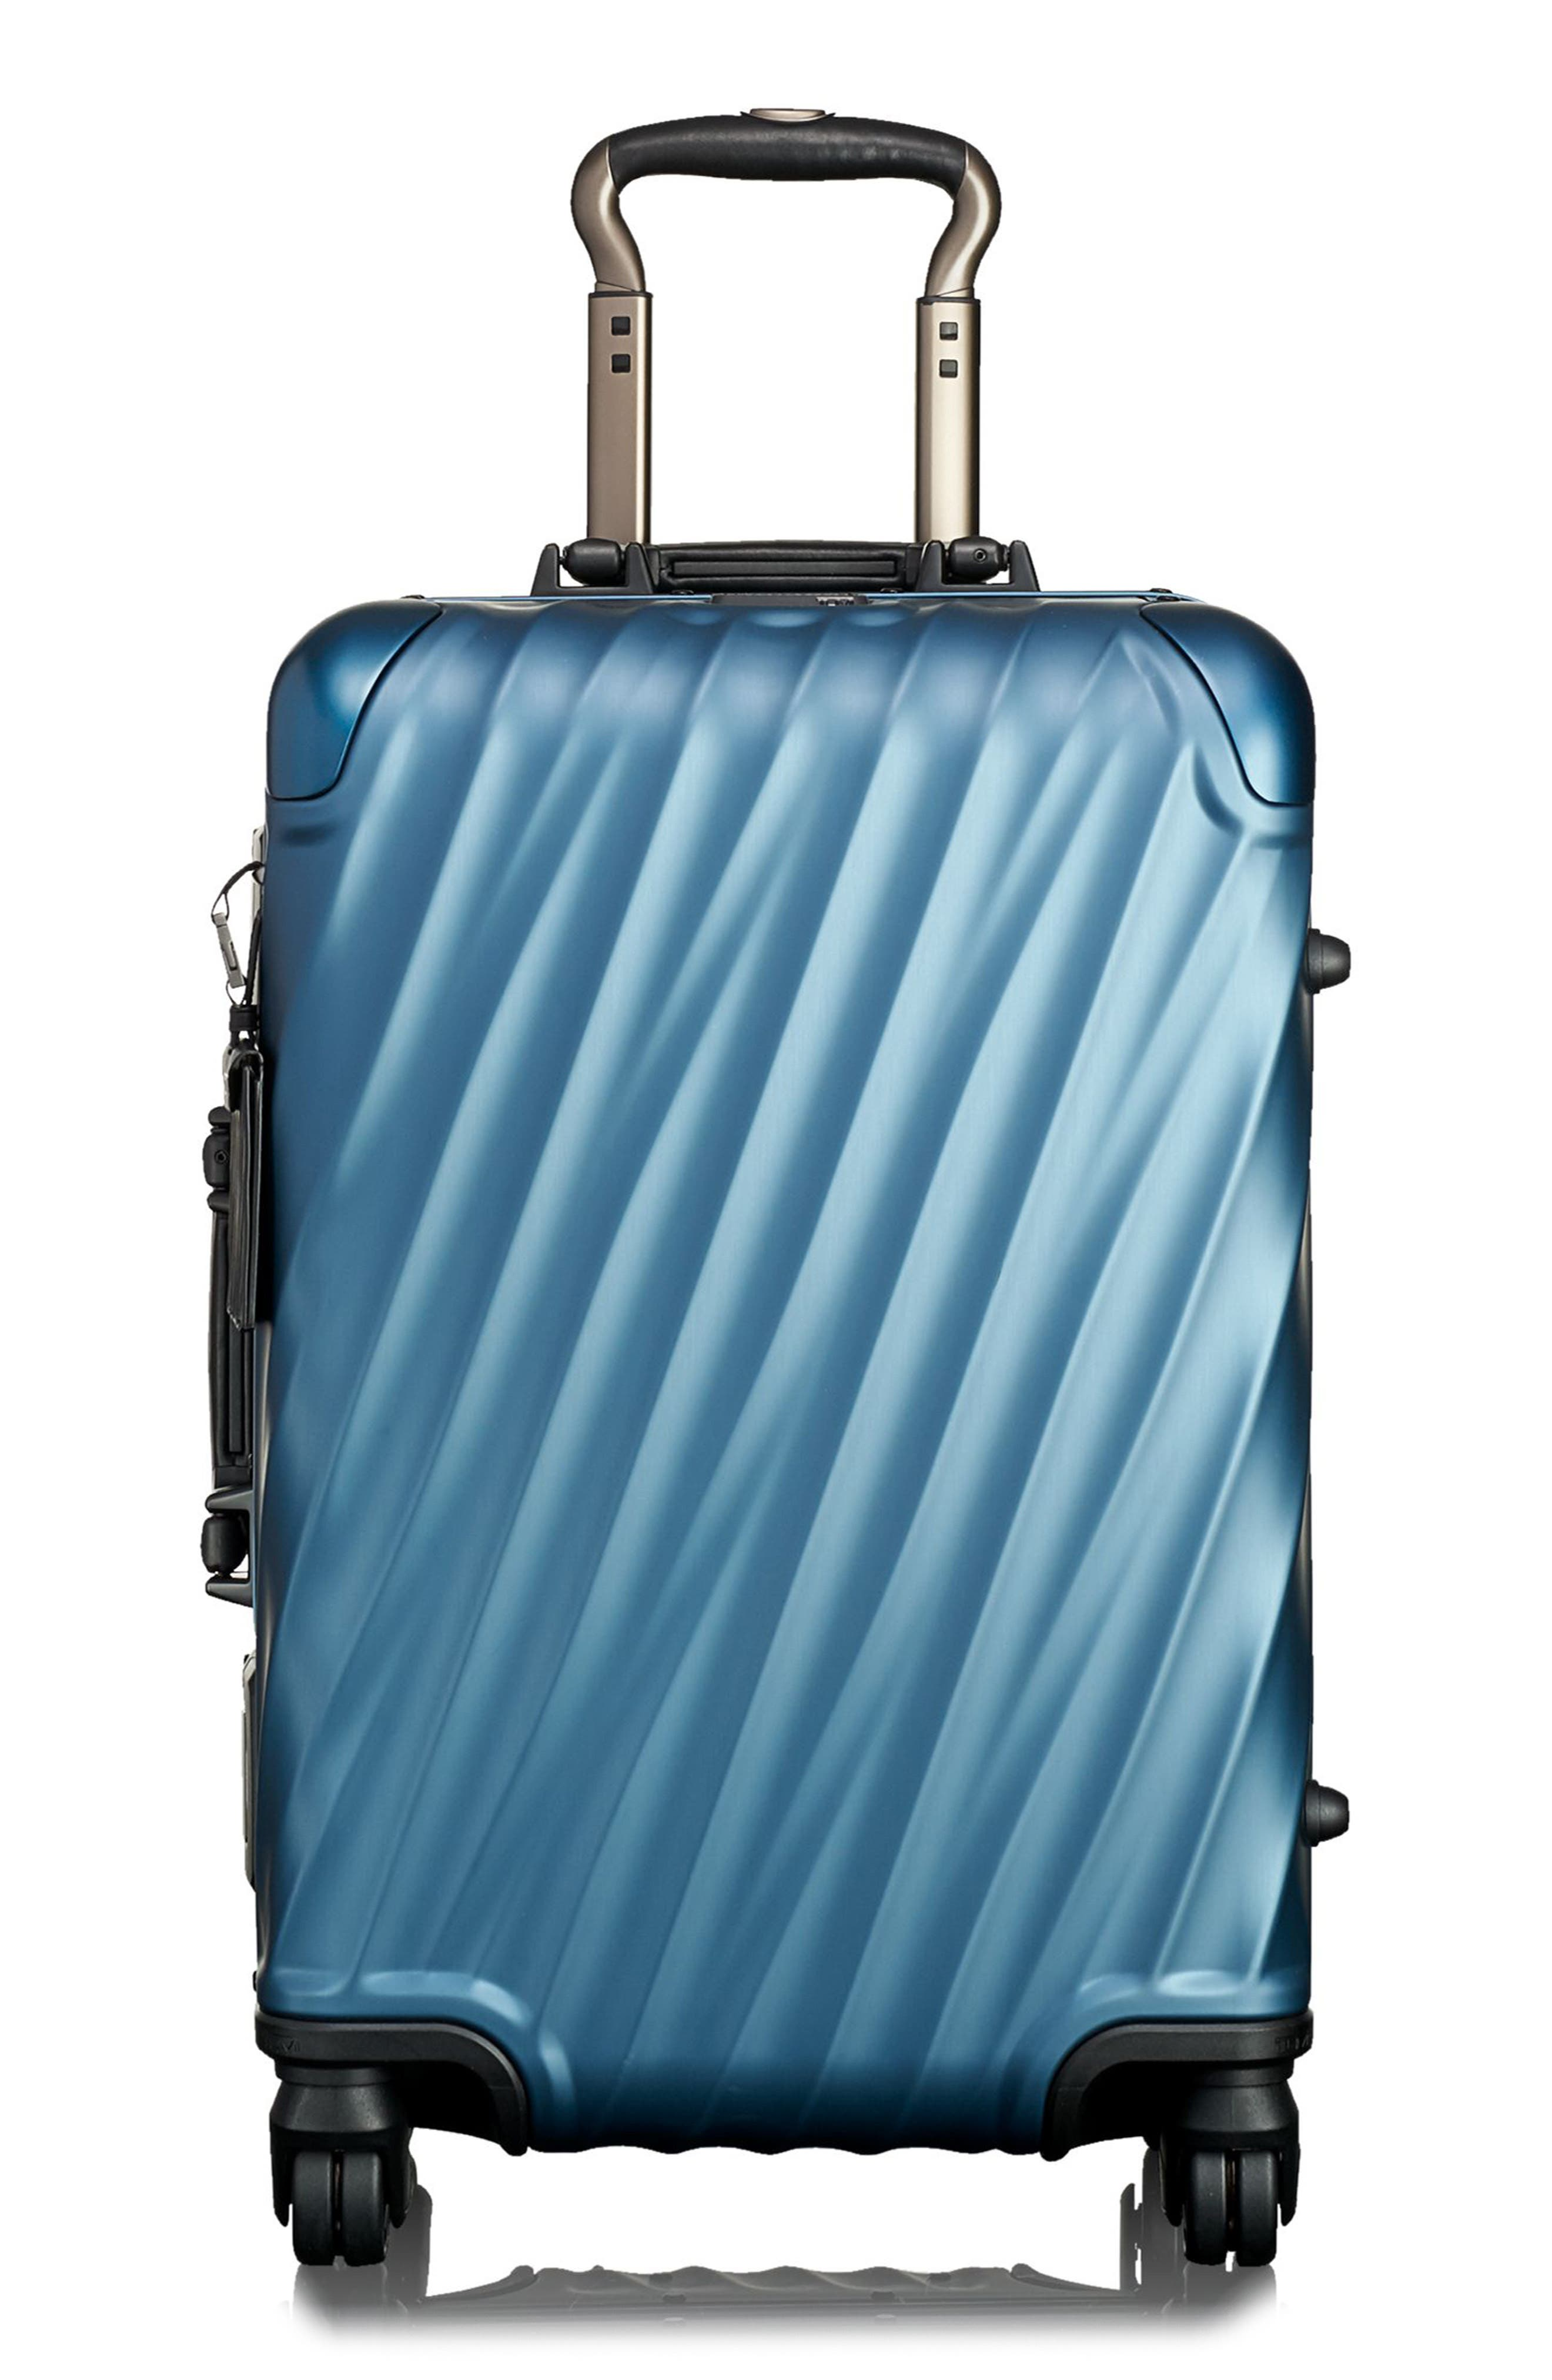 TUMI 19 Degree 22 Inch International Wheeled Aluminum Carry-On